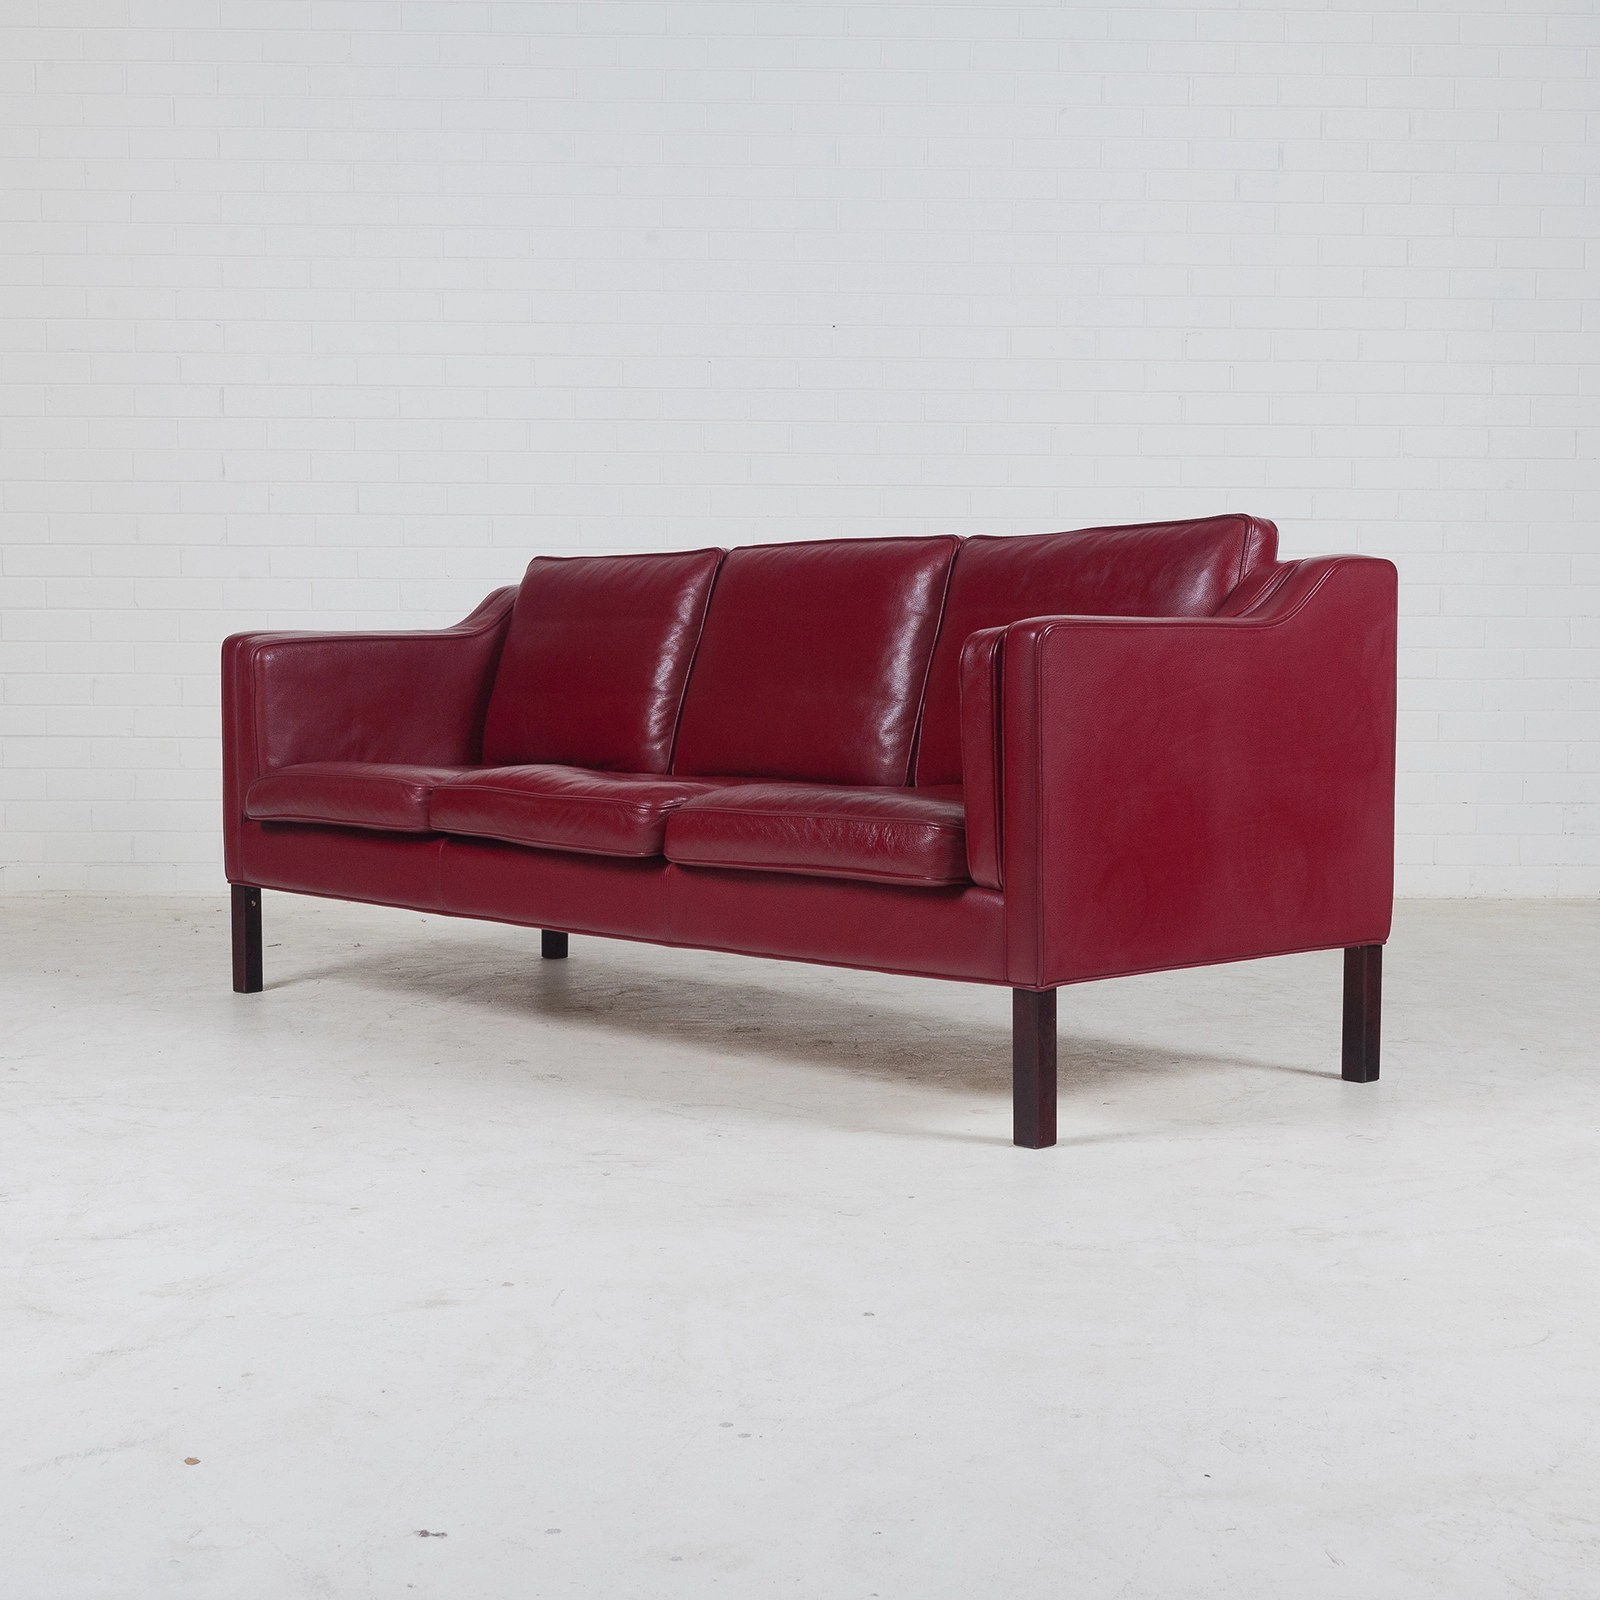 cherry red leather sofa 72 inch wide bed 3 seat in and stained legs 1960s